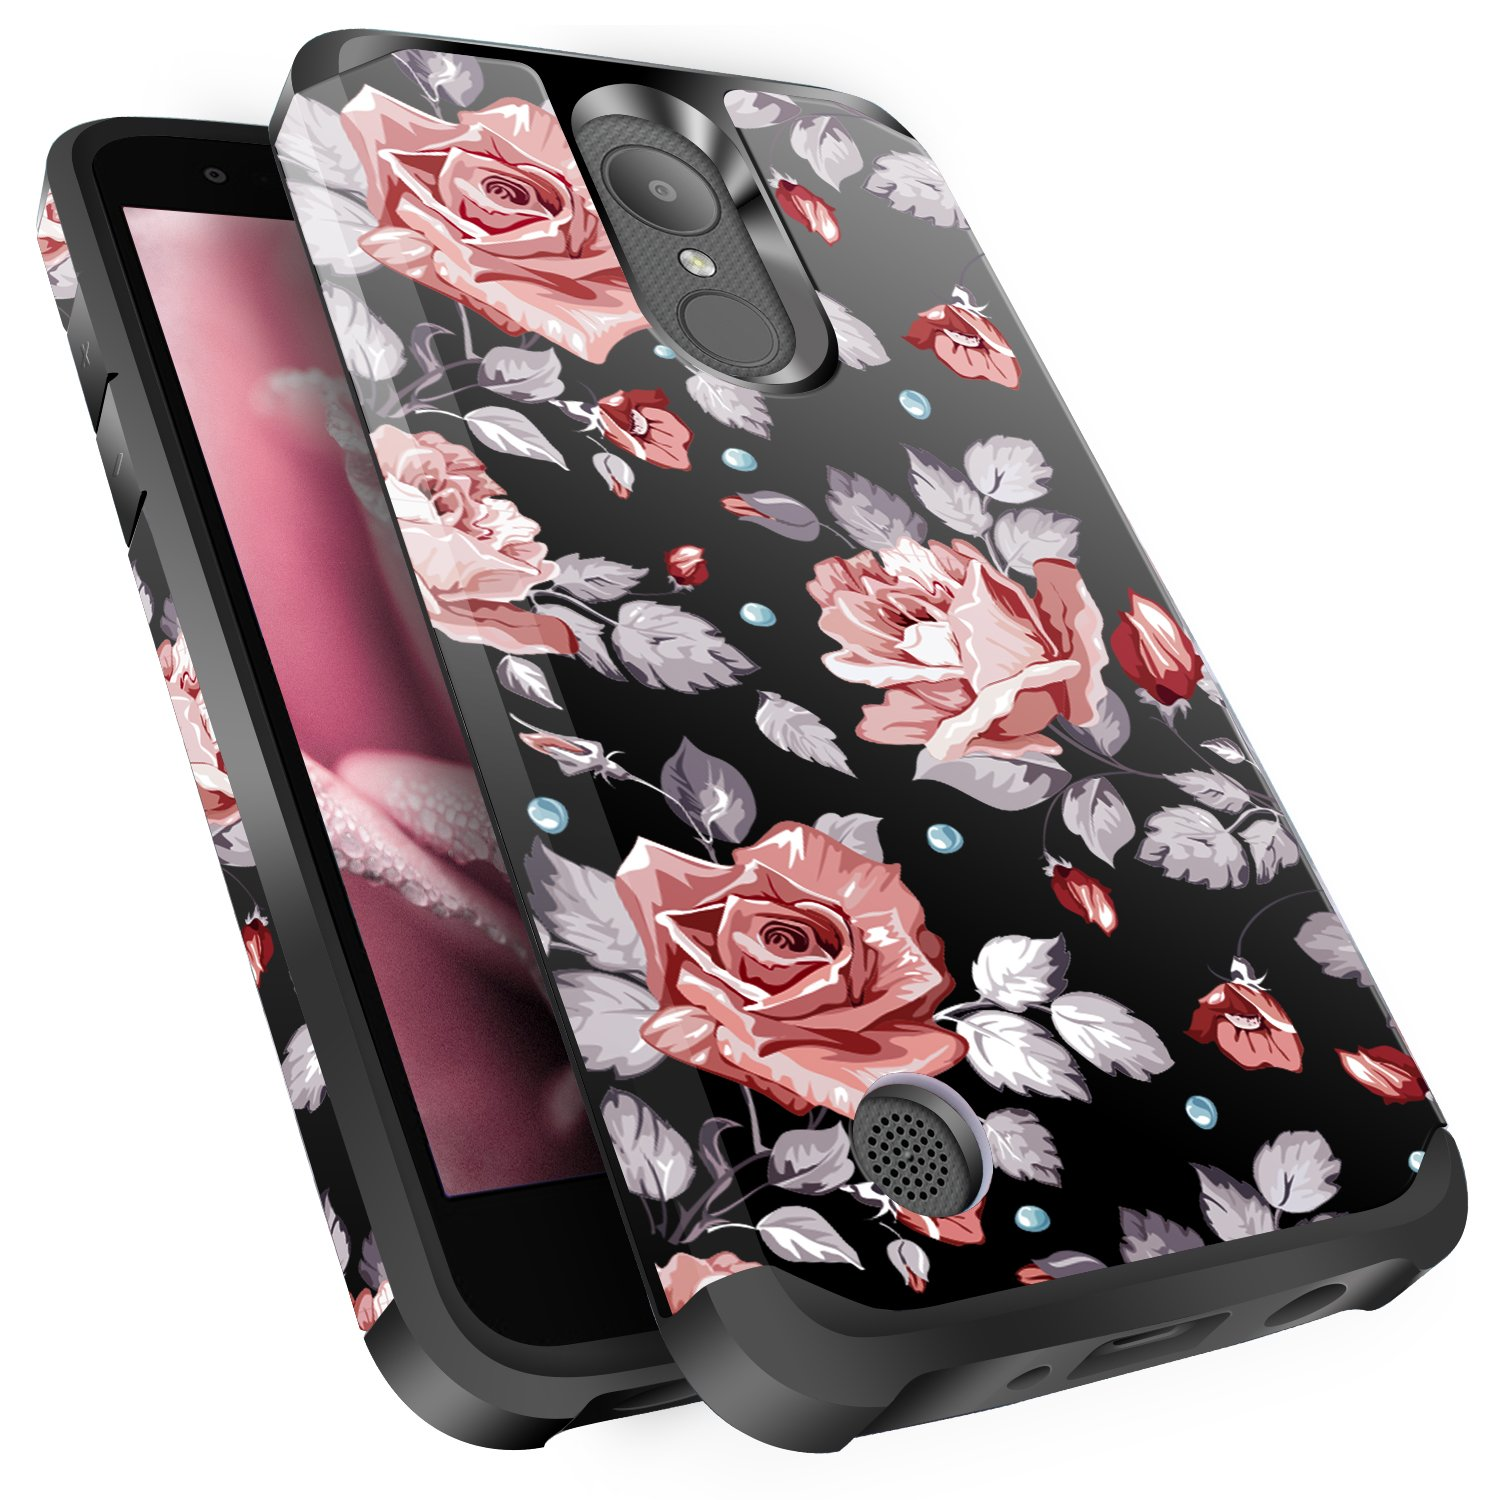 LG Aristo Case, Risio 2 Case, Phoenix 3 Case, Fortune/Rebel 2 LTE/K8 2017 Case, Miss Arts Slim Anti-Scratch Dual Layer Hybrid Sturdy Armor Protective Cover Case for LG LV3 -Rose Gold Flower/Black